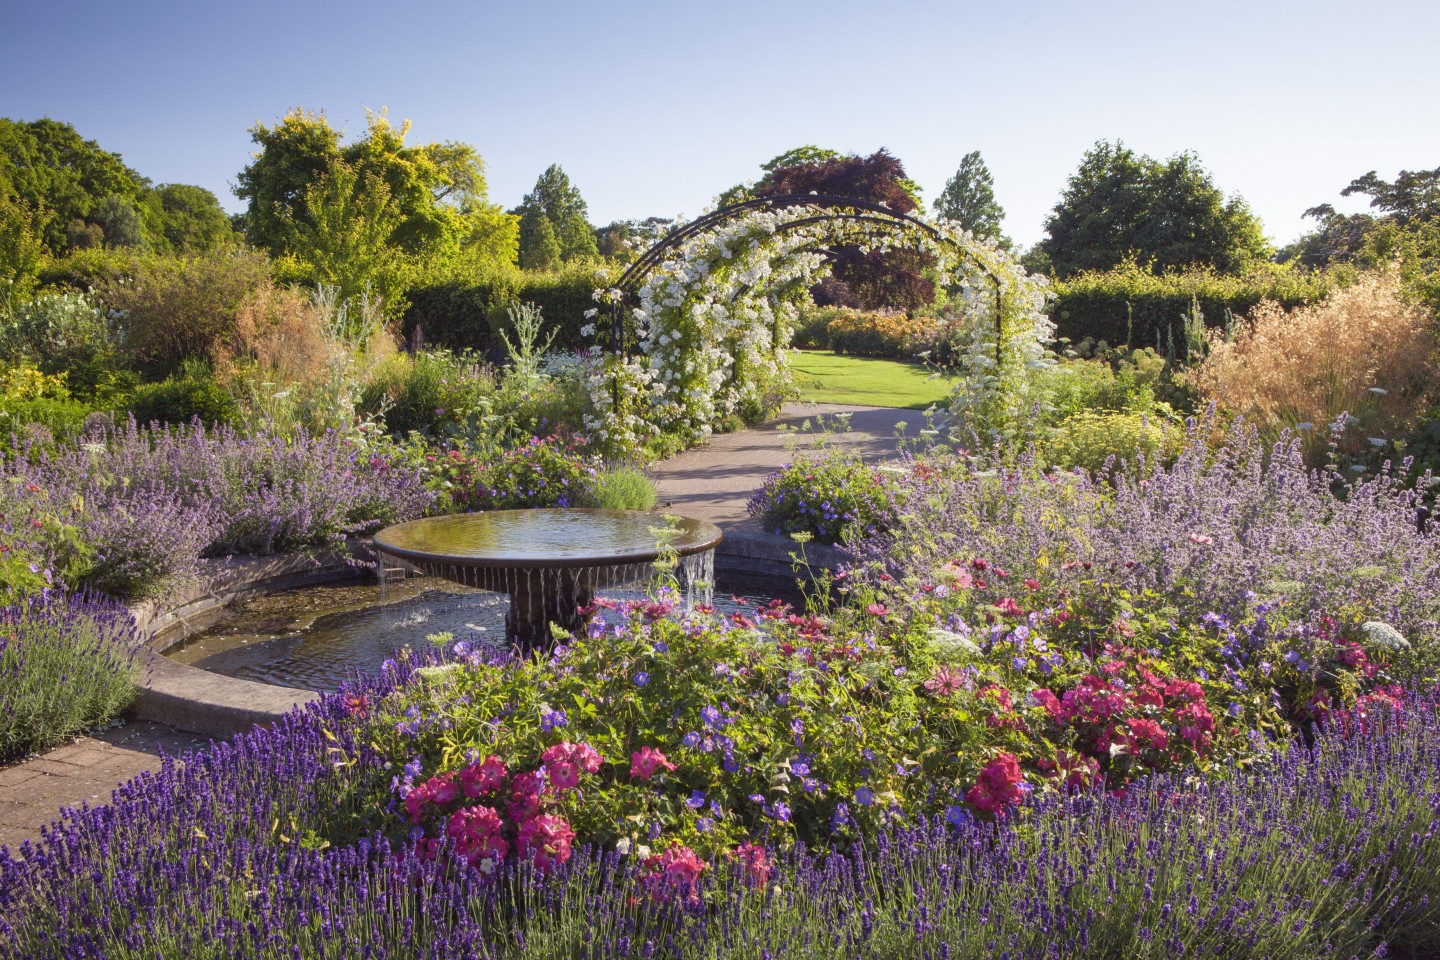 Tour an English Garden in Maryland